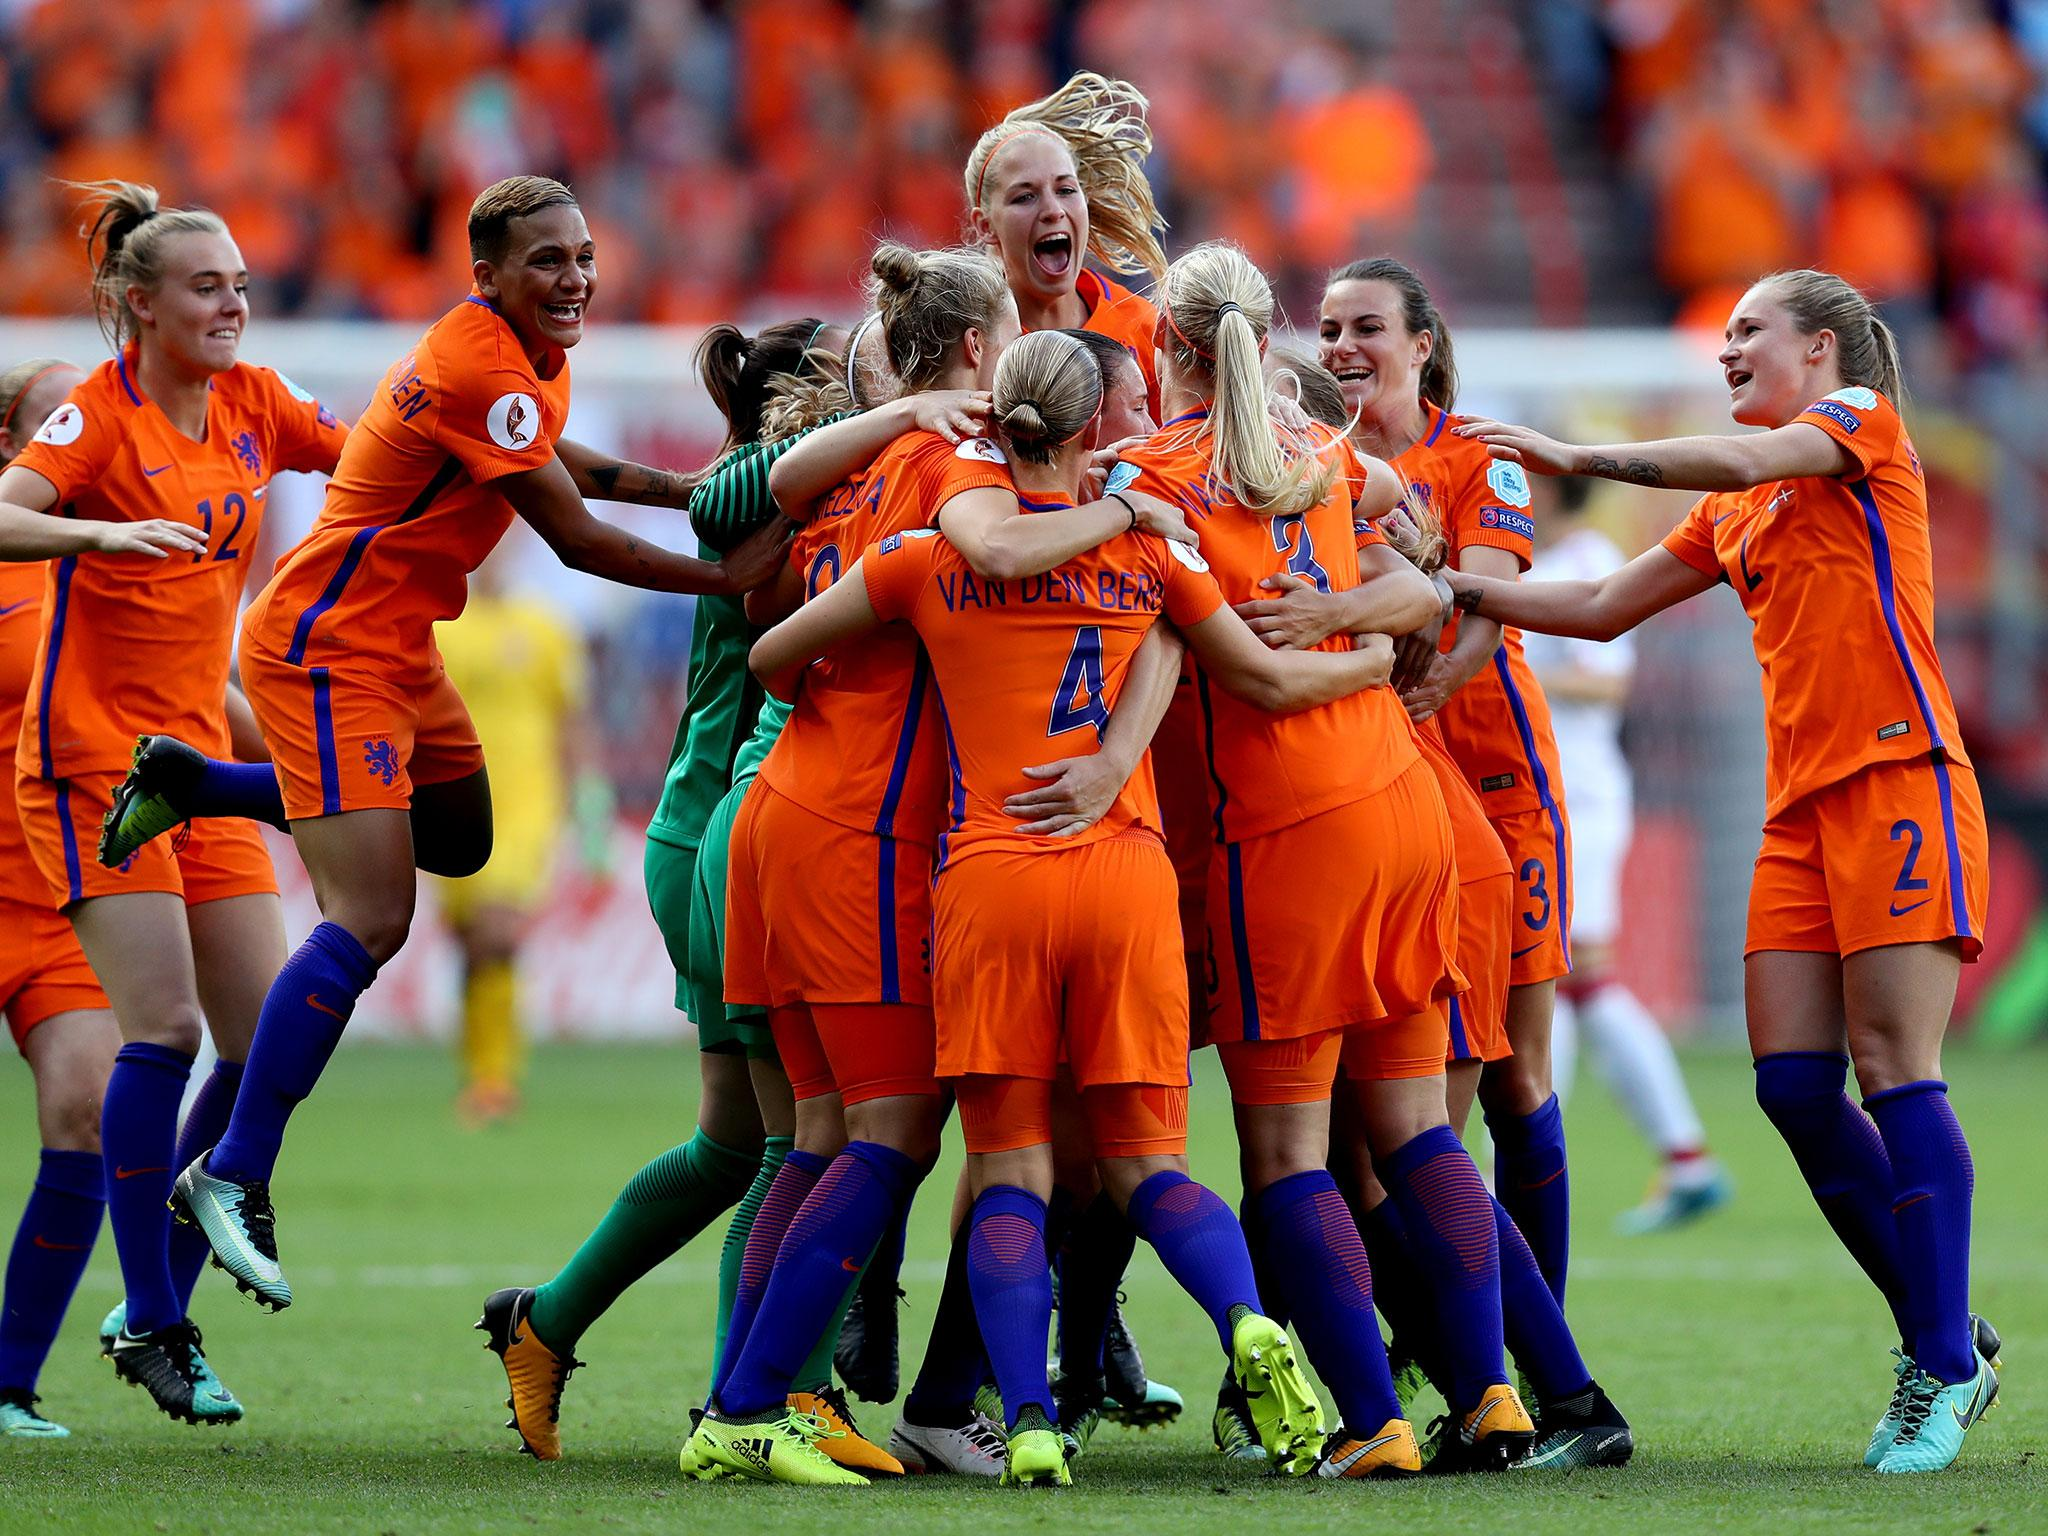 Netherlands claim victory in thrilling Euro 2017 final after overcoming Denmark on home soil